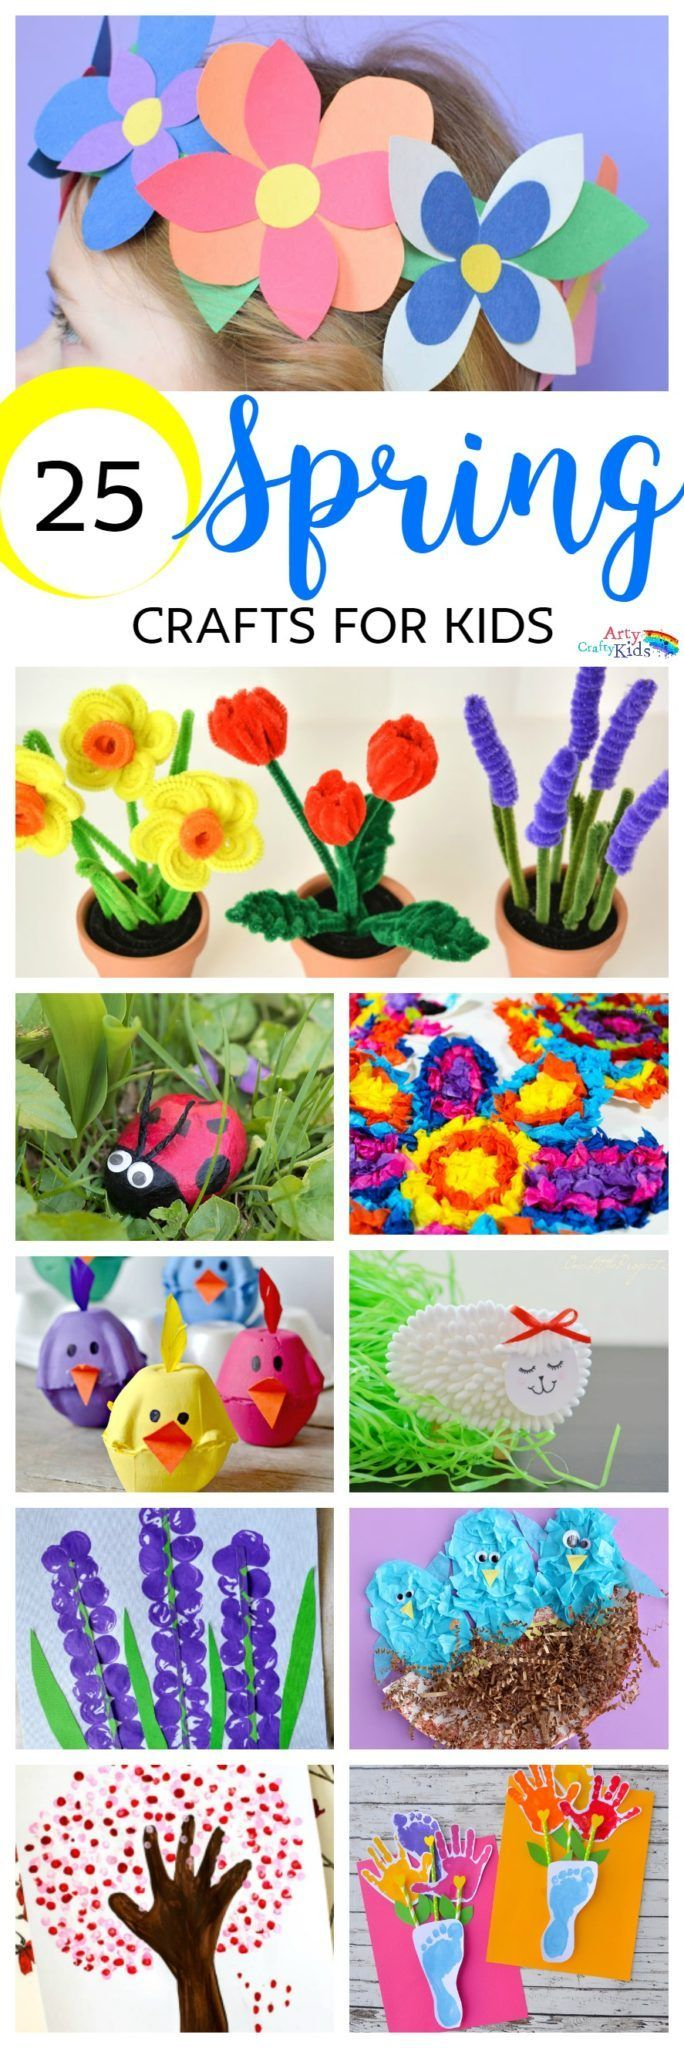 25 Spring Crafts for Kids